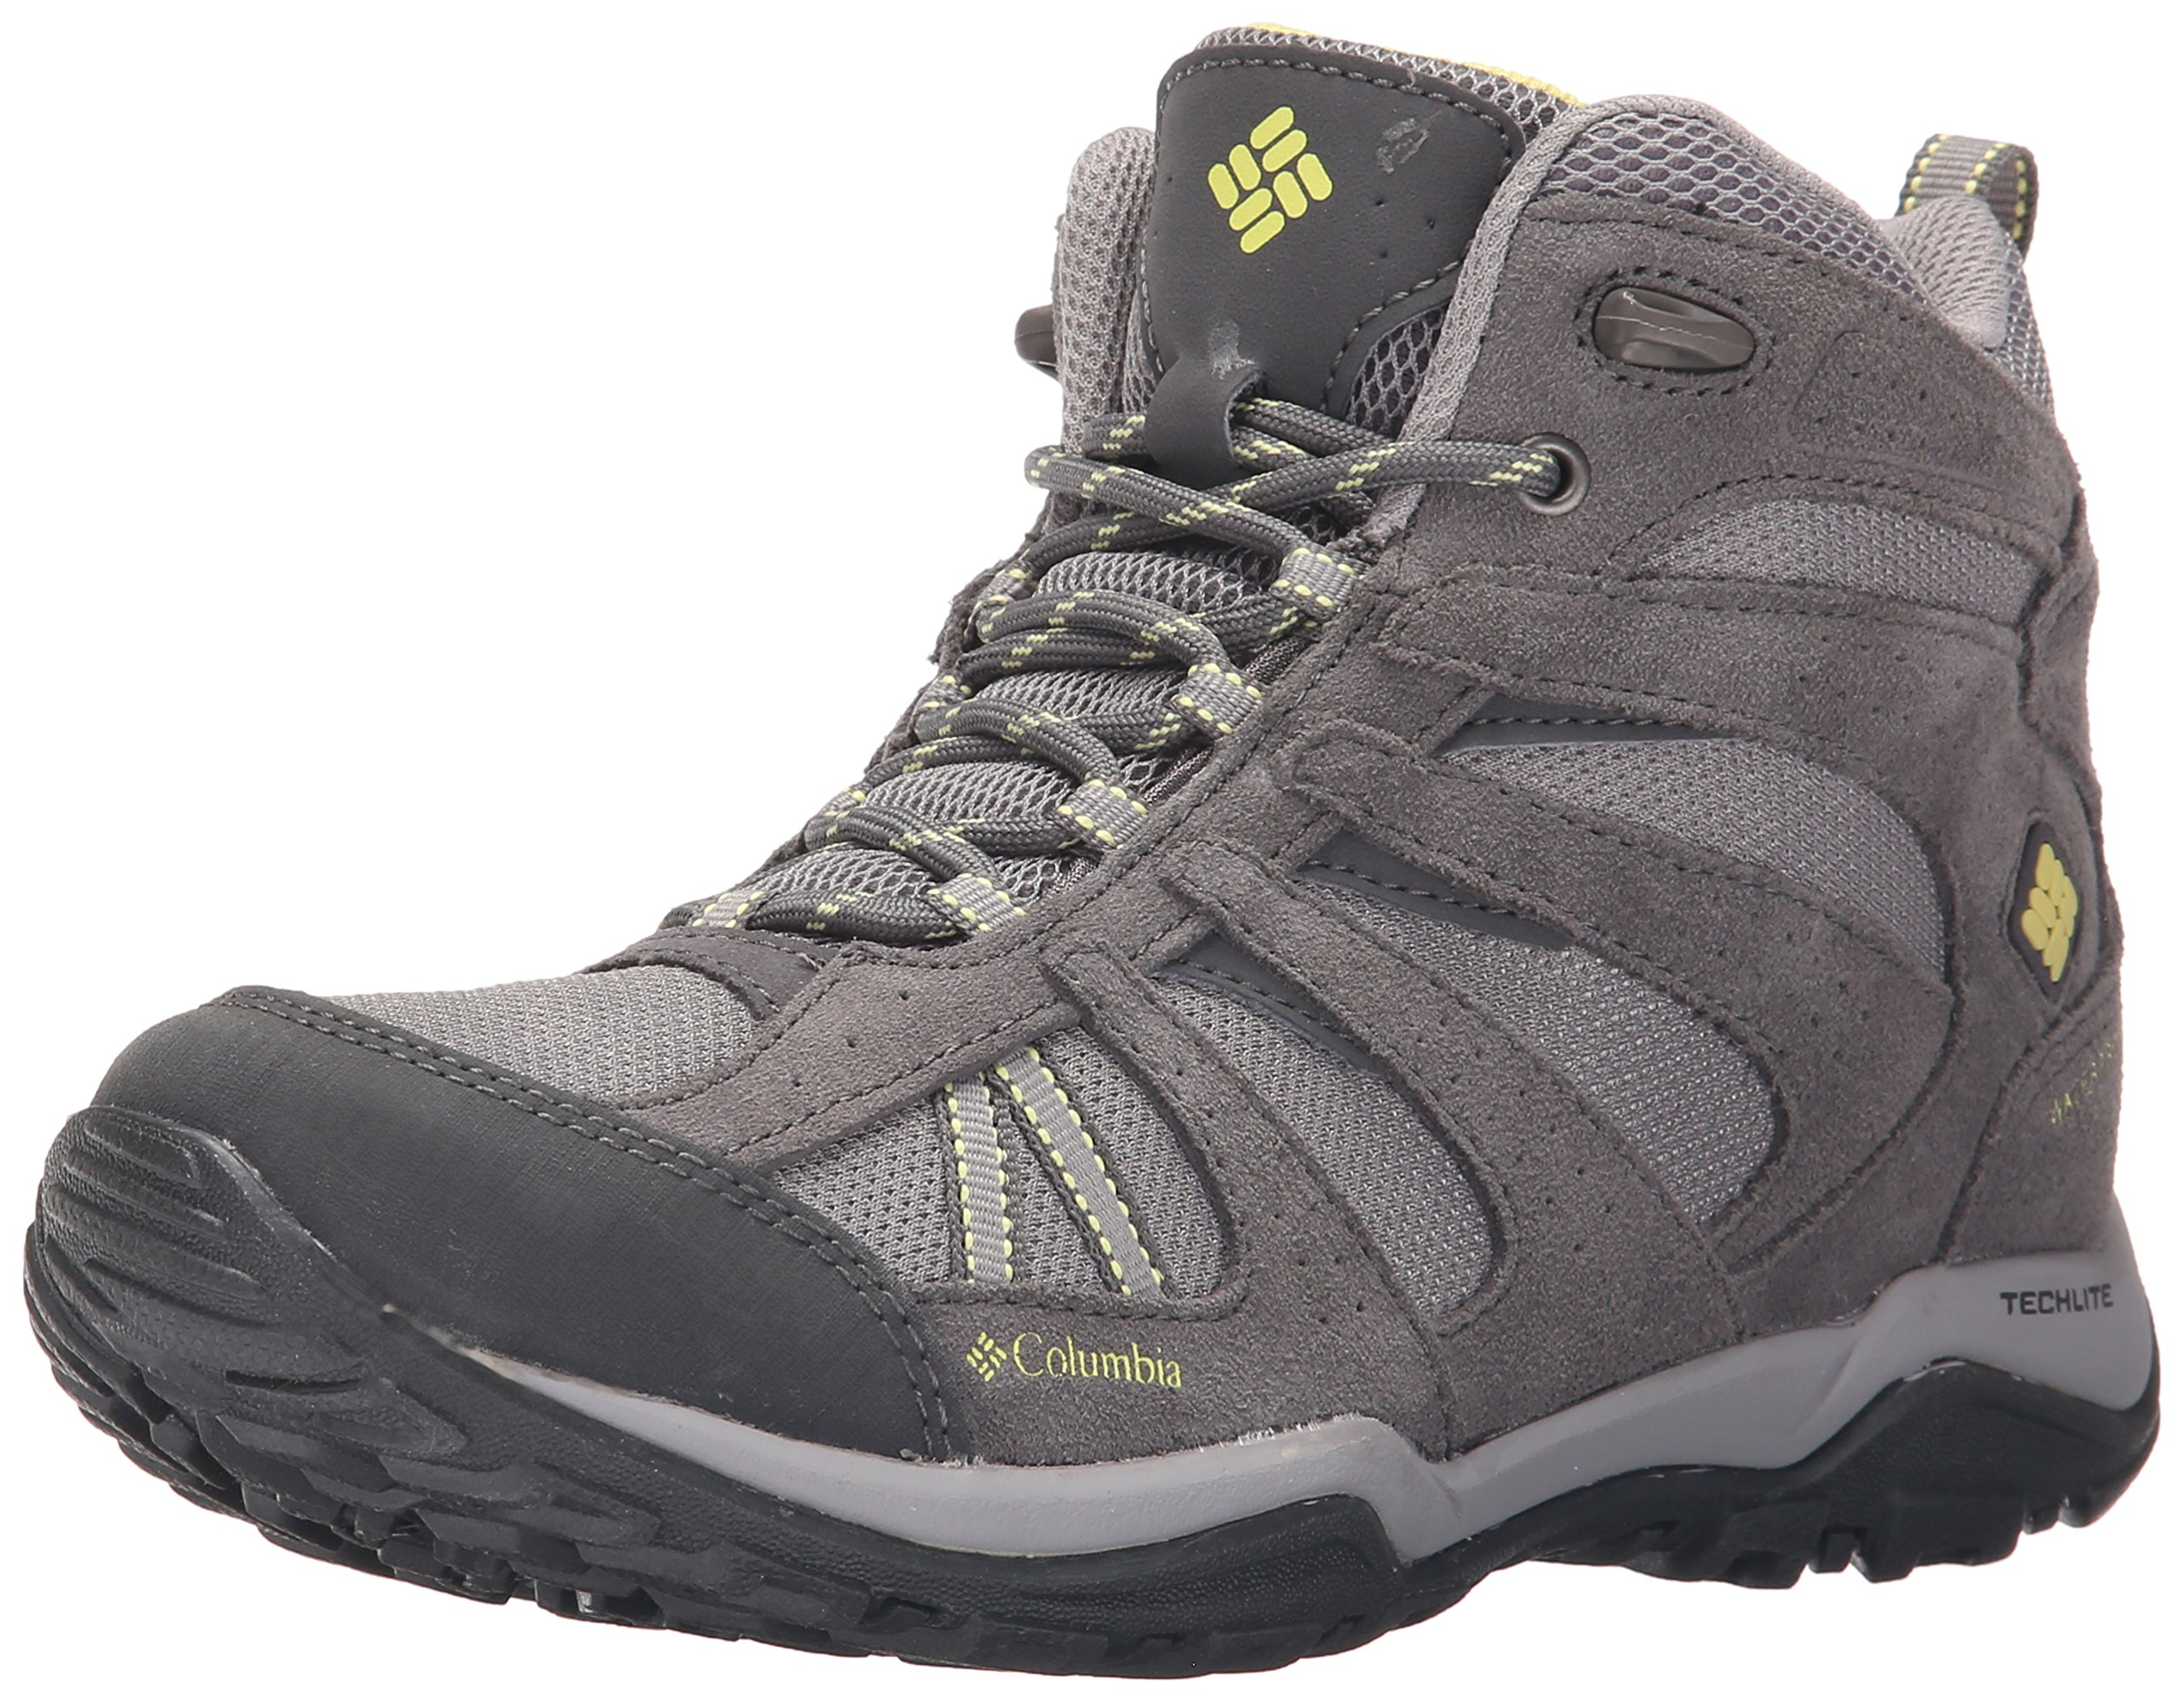 Columbia Women's Dakota Drifter MID Waterproof Hiking Boot, Light Grey, Sunnyside, 6.5 B US by Columbia